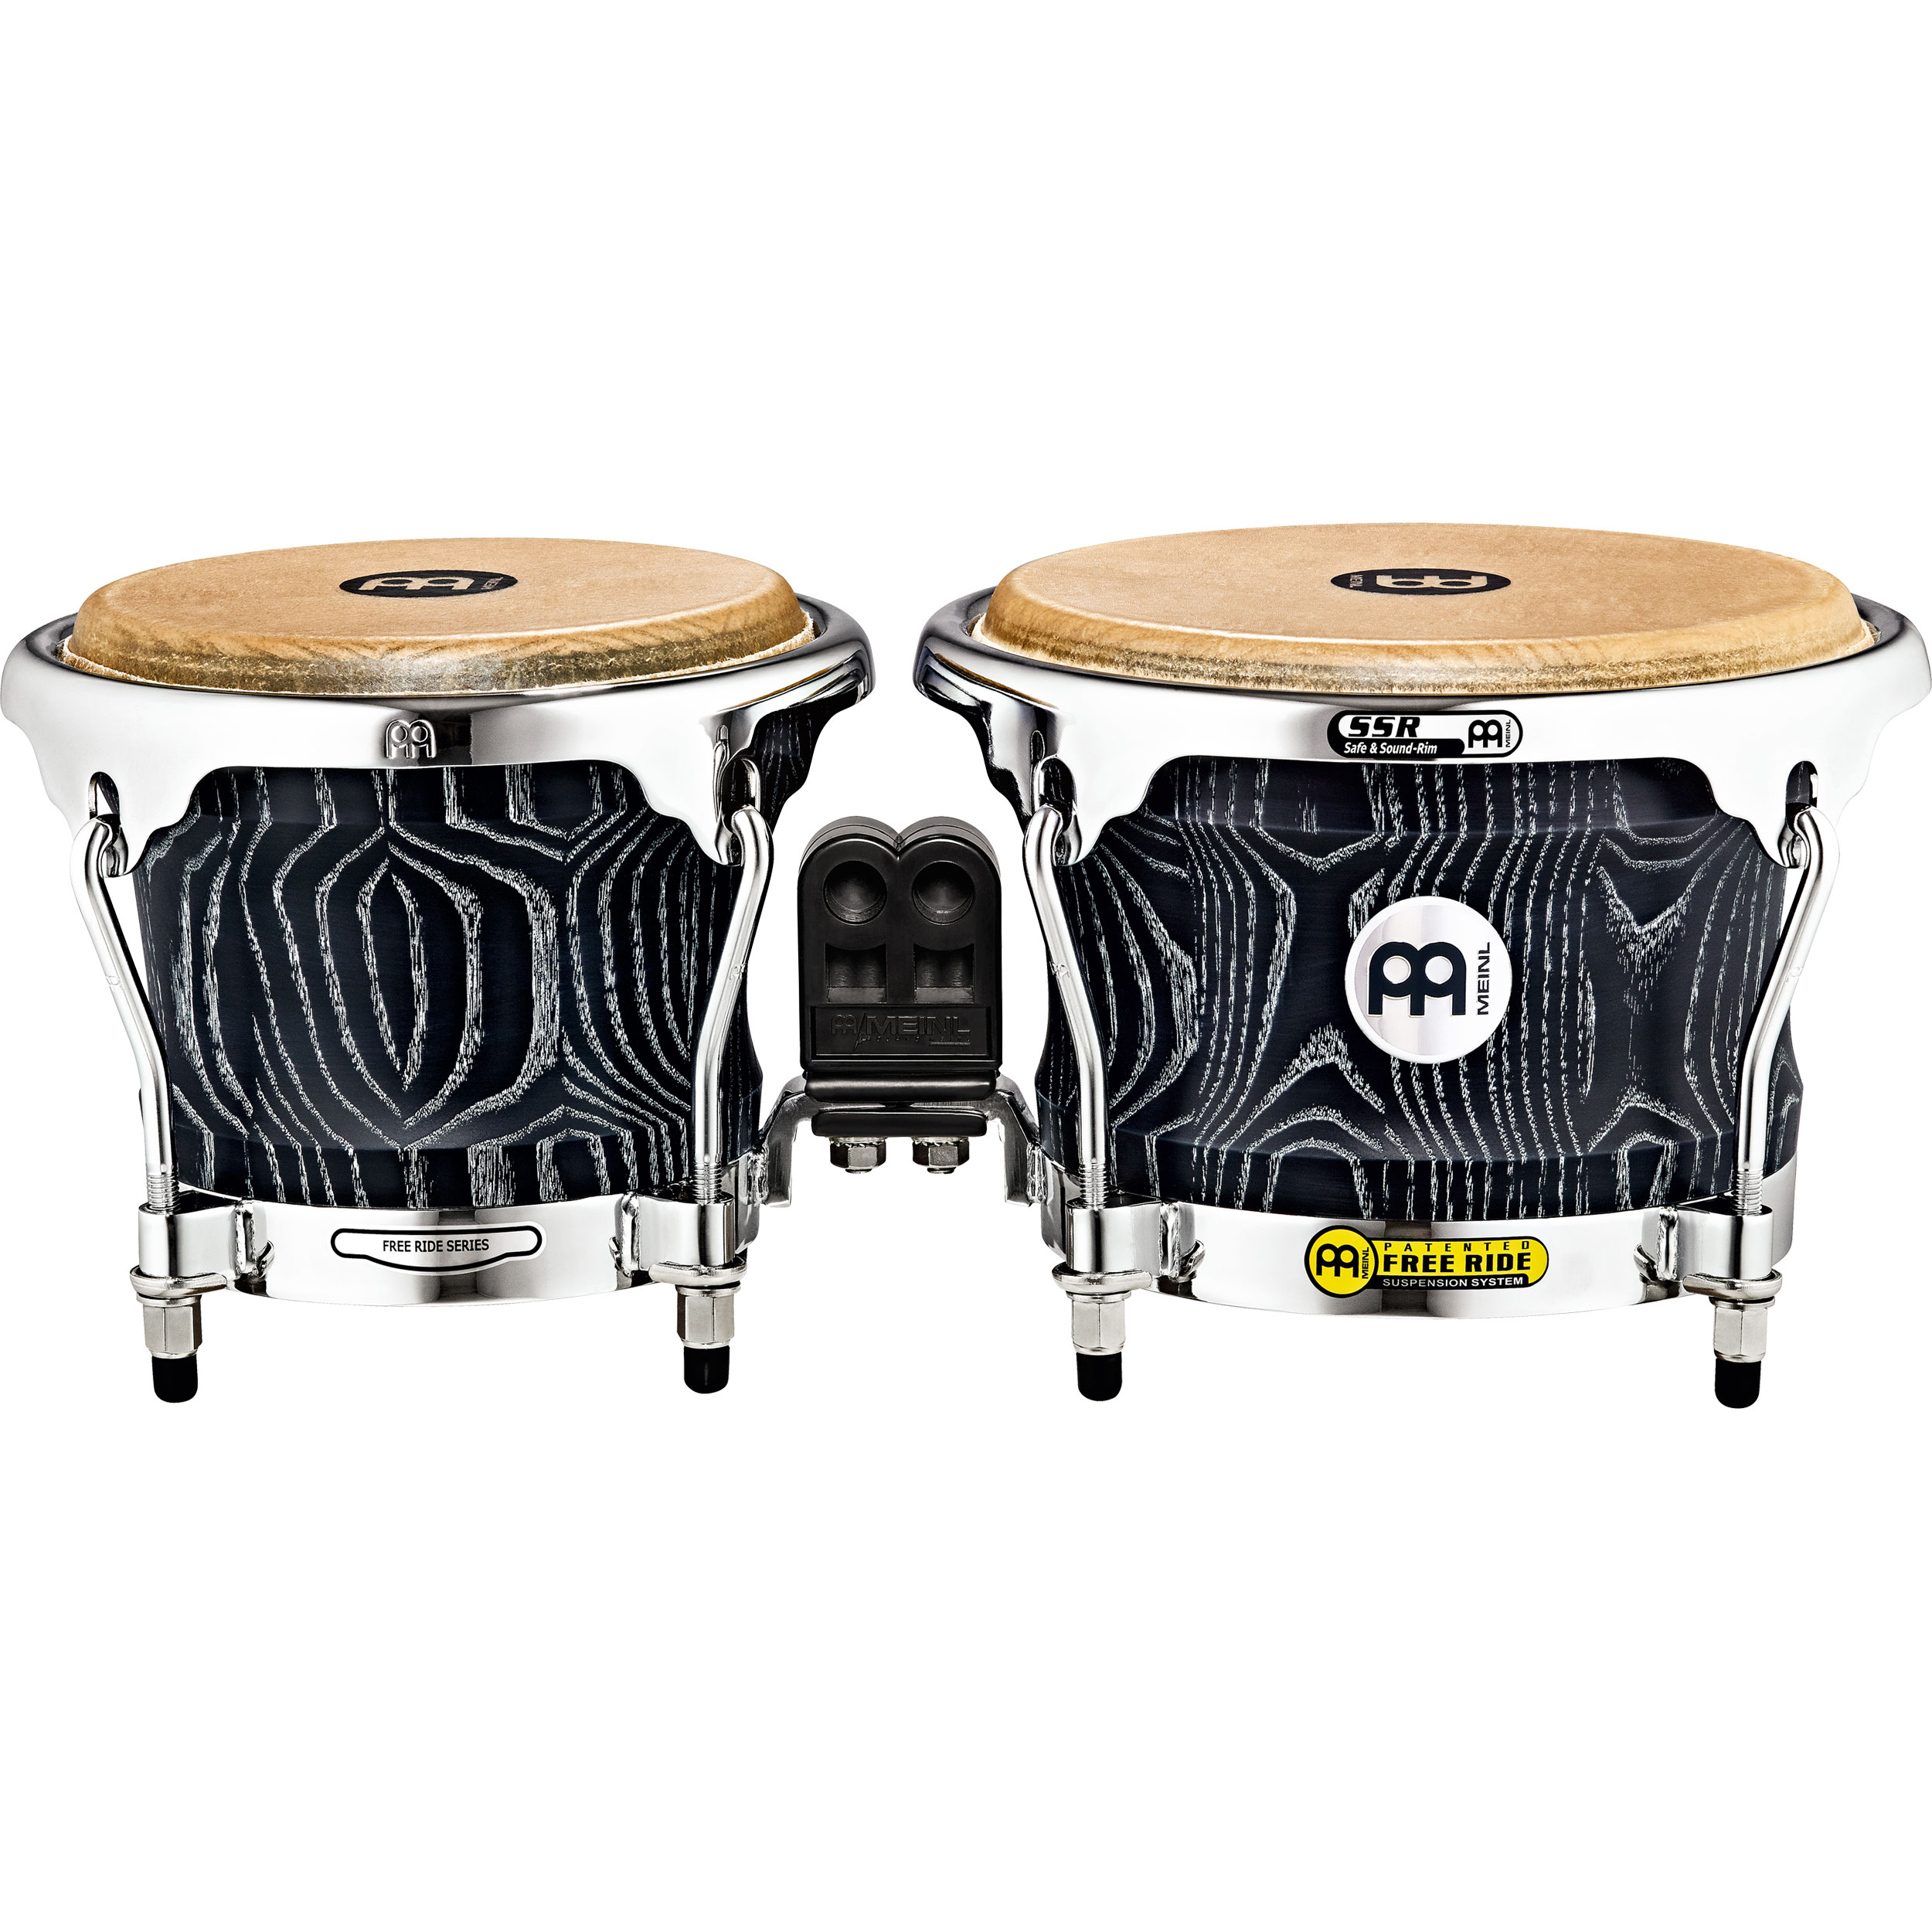 "Meinl 7"" & 8.5"" Woodcraft Series Bongos in Vintage Black"